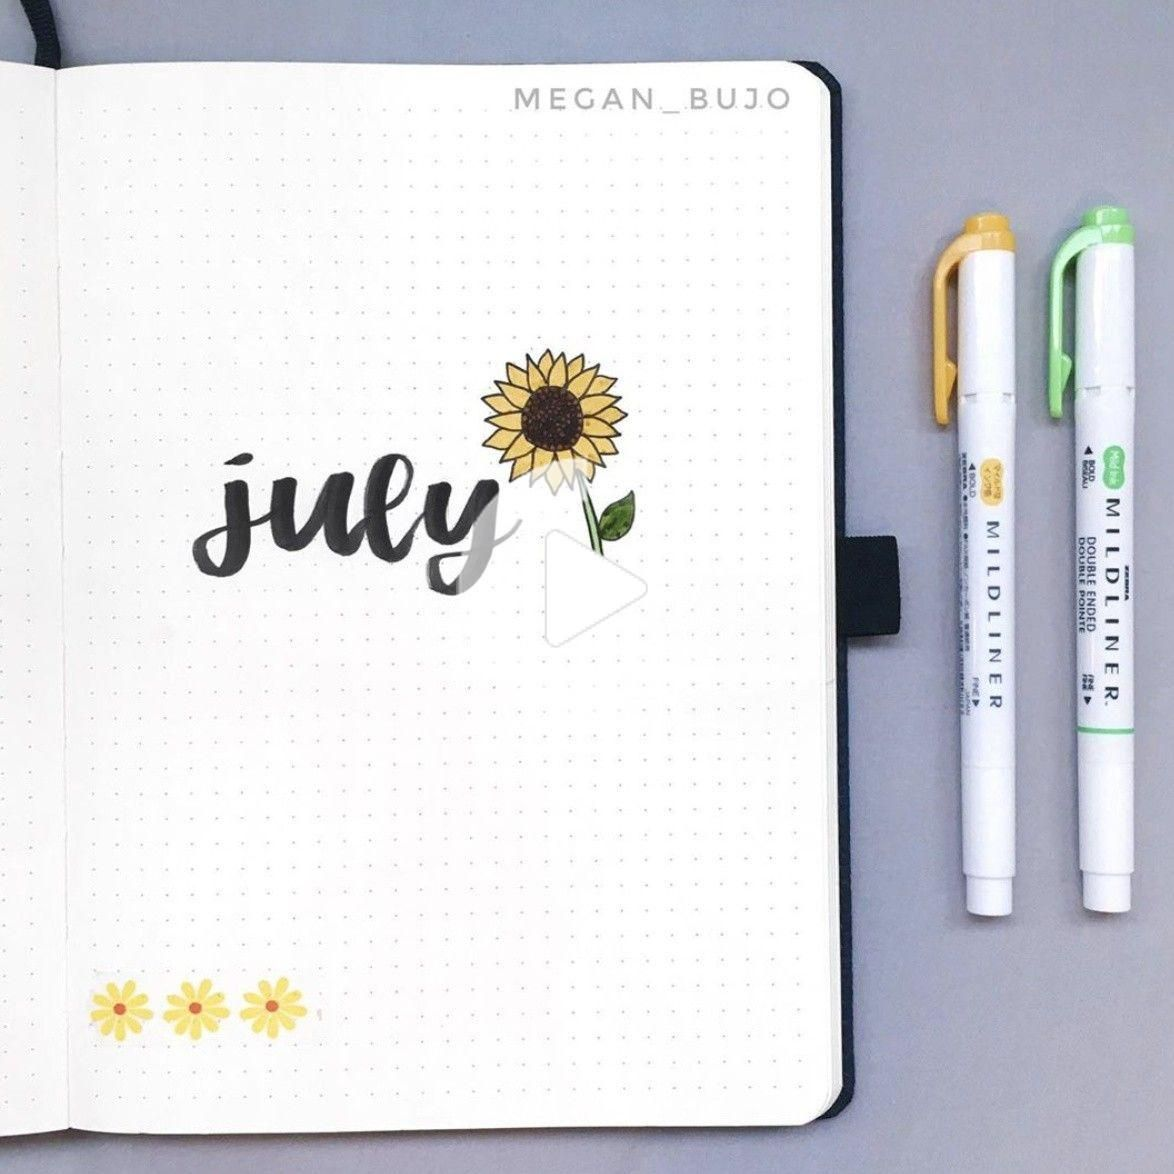 Best JULY Bullet Journal Ideas that You'll Love - The Smart Wander